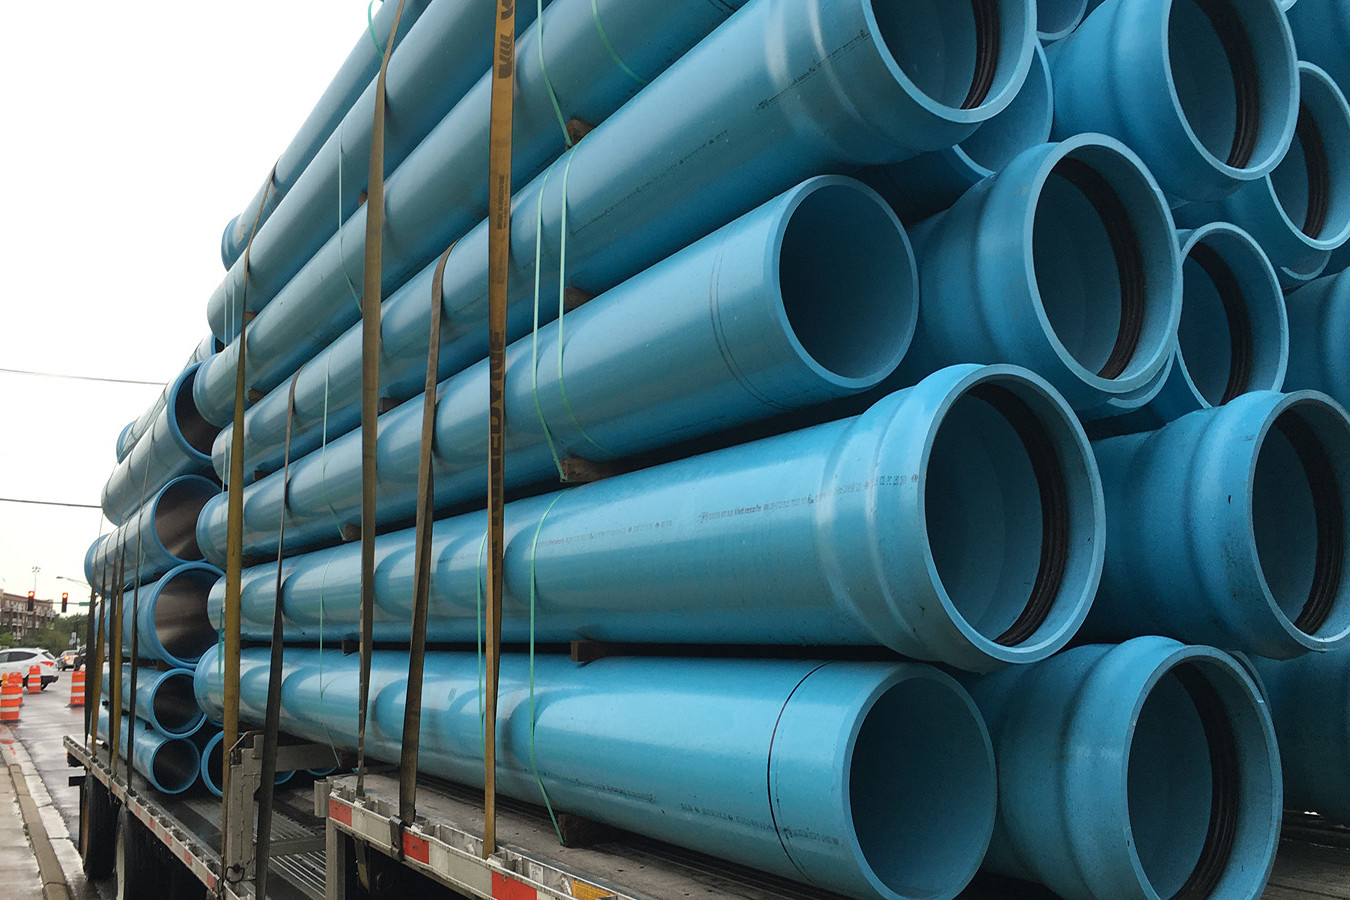 Touhy Avenue Water Main Replacement | Ciorba Group